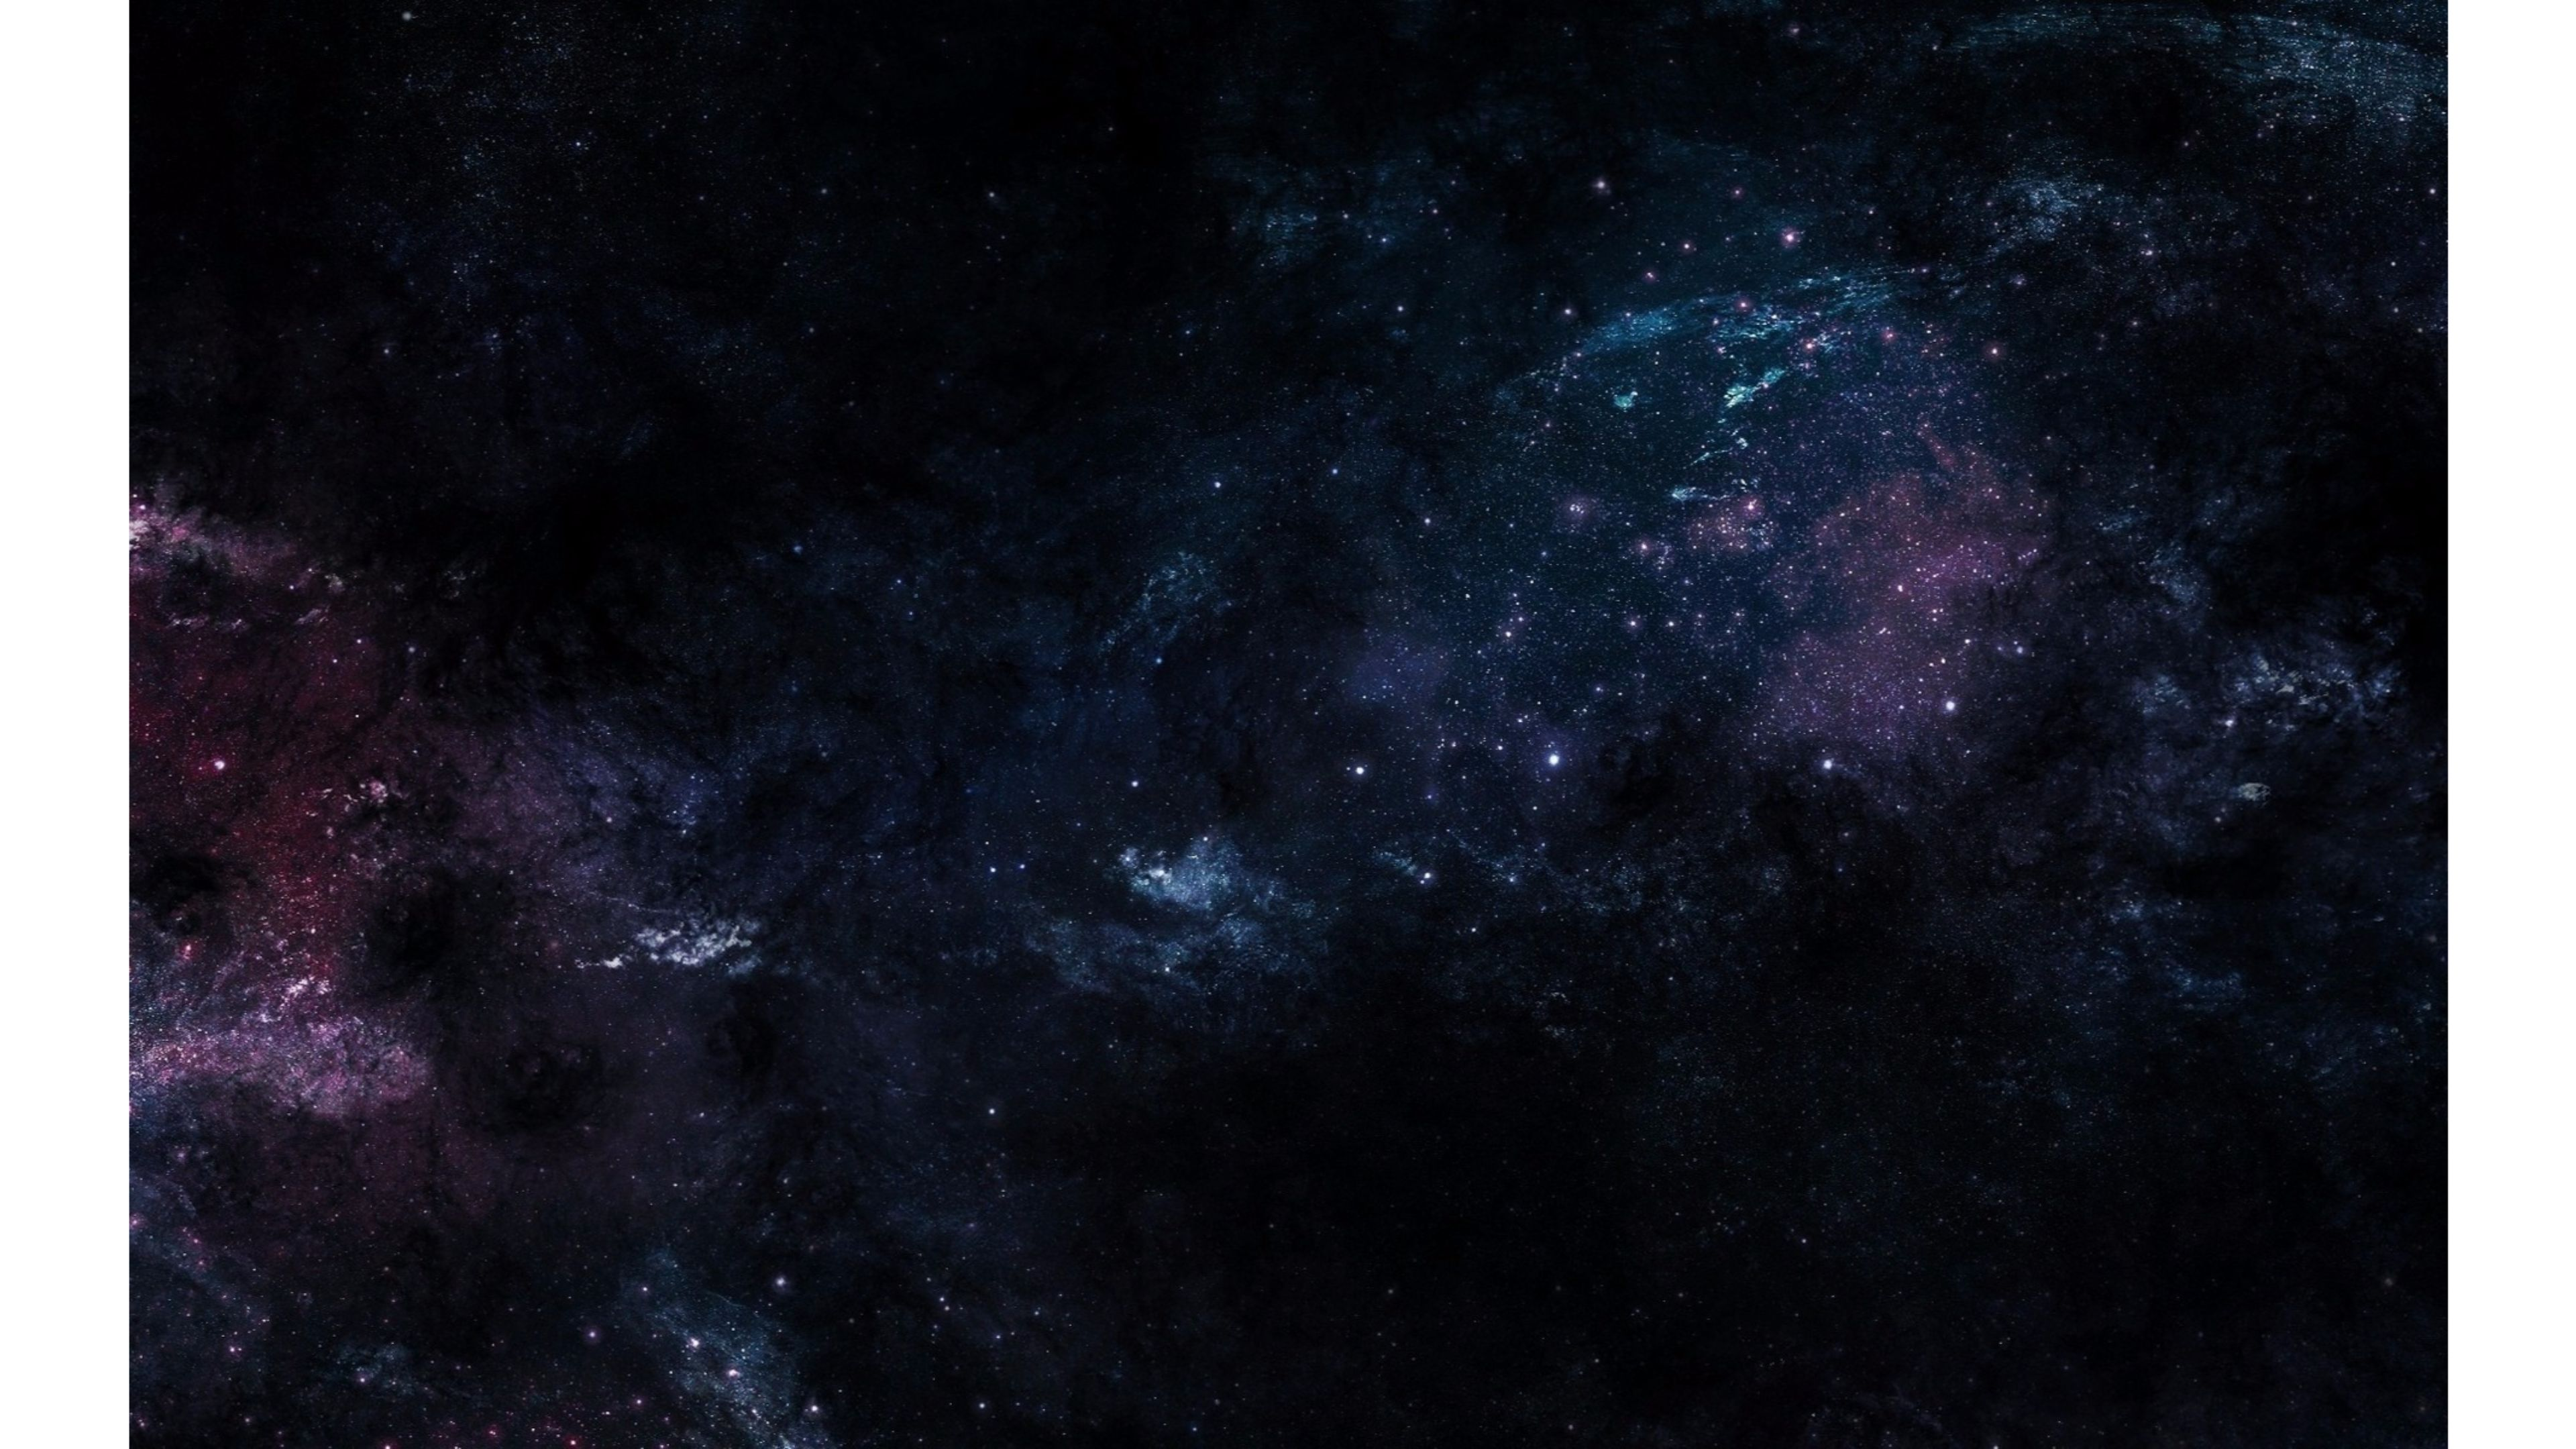 Dark space wallpaper wallpapersafari - Black space wallpaper ...